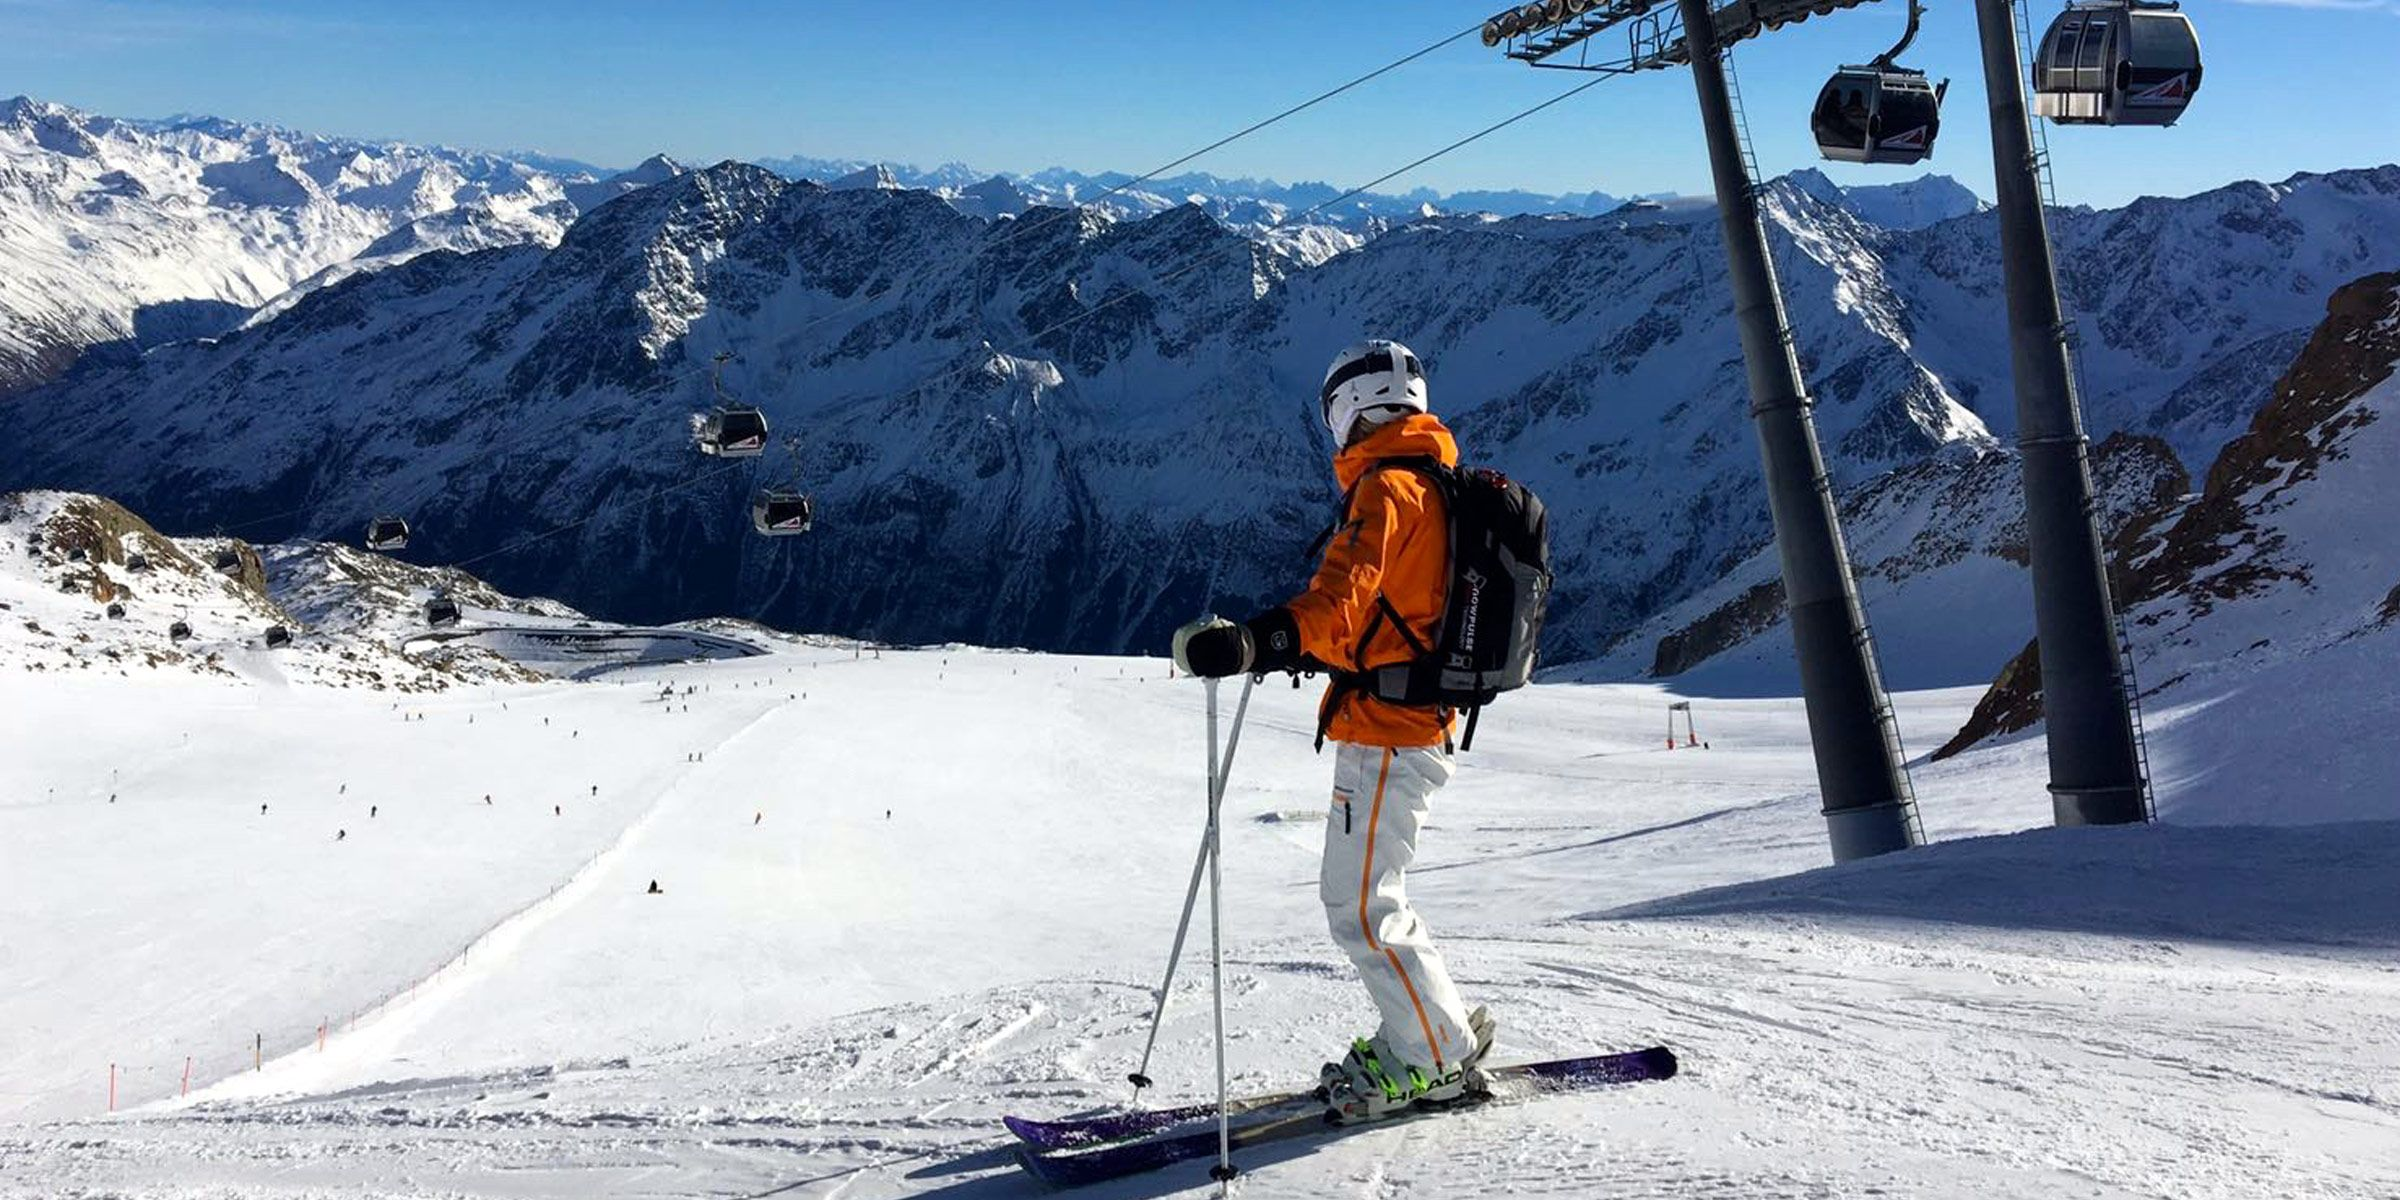 Pistes not to miss